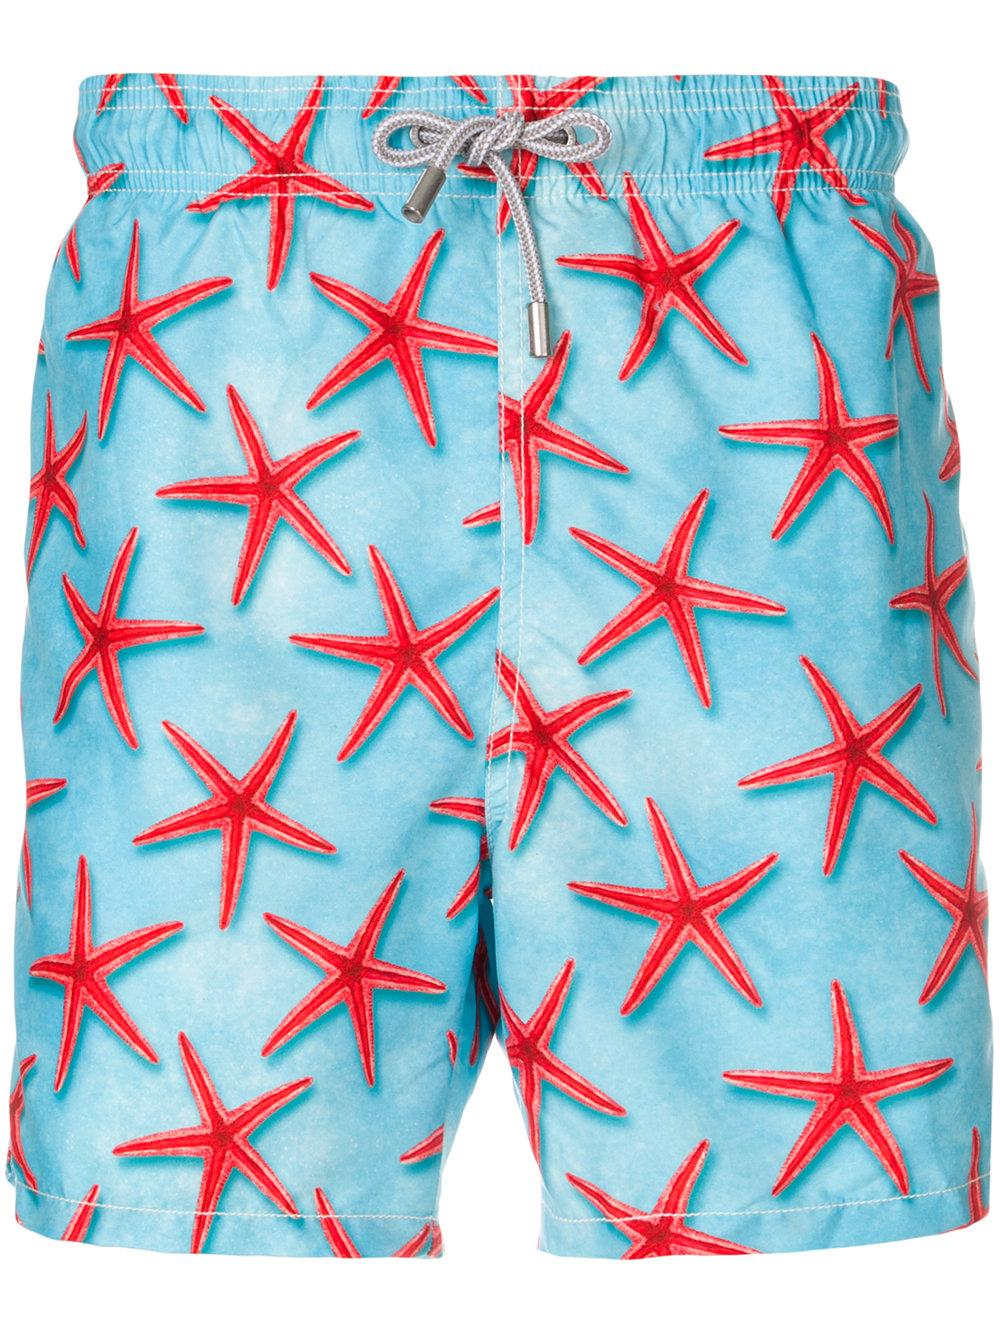 bbac2a5353 Mc2 Saint Barth Starfish Print Swim Shorts - Blue | ModeSens